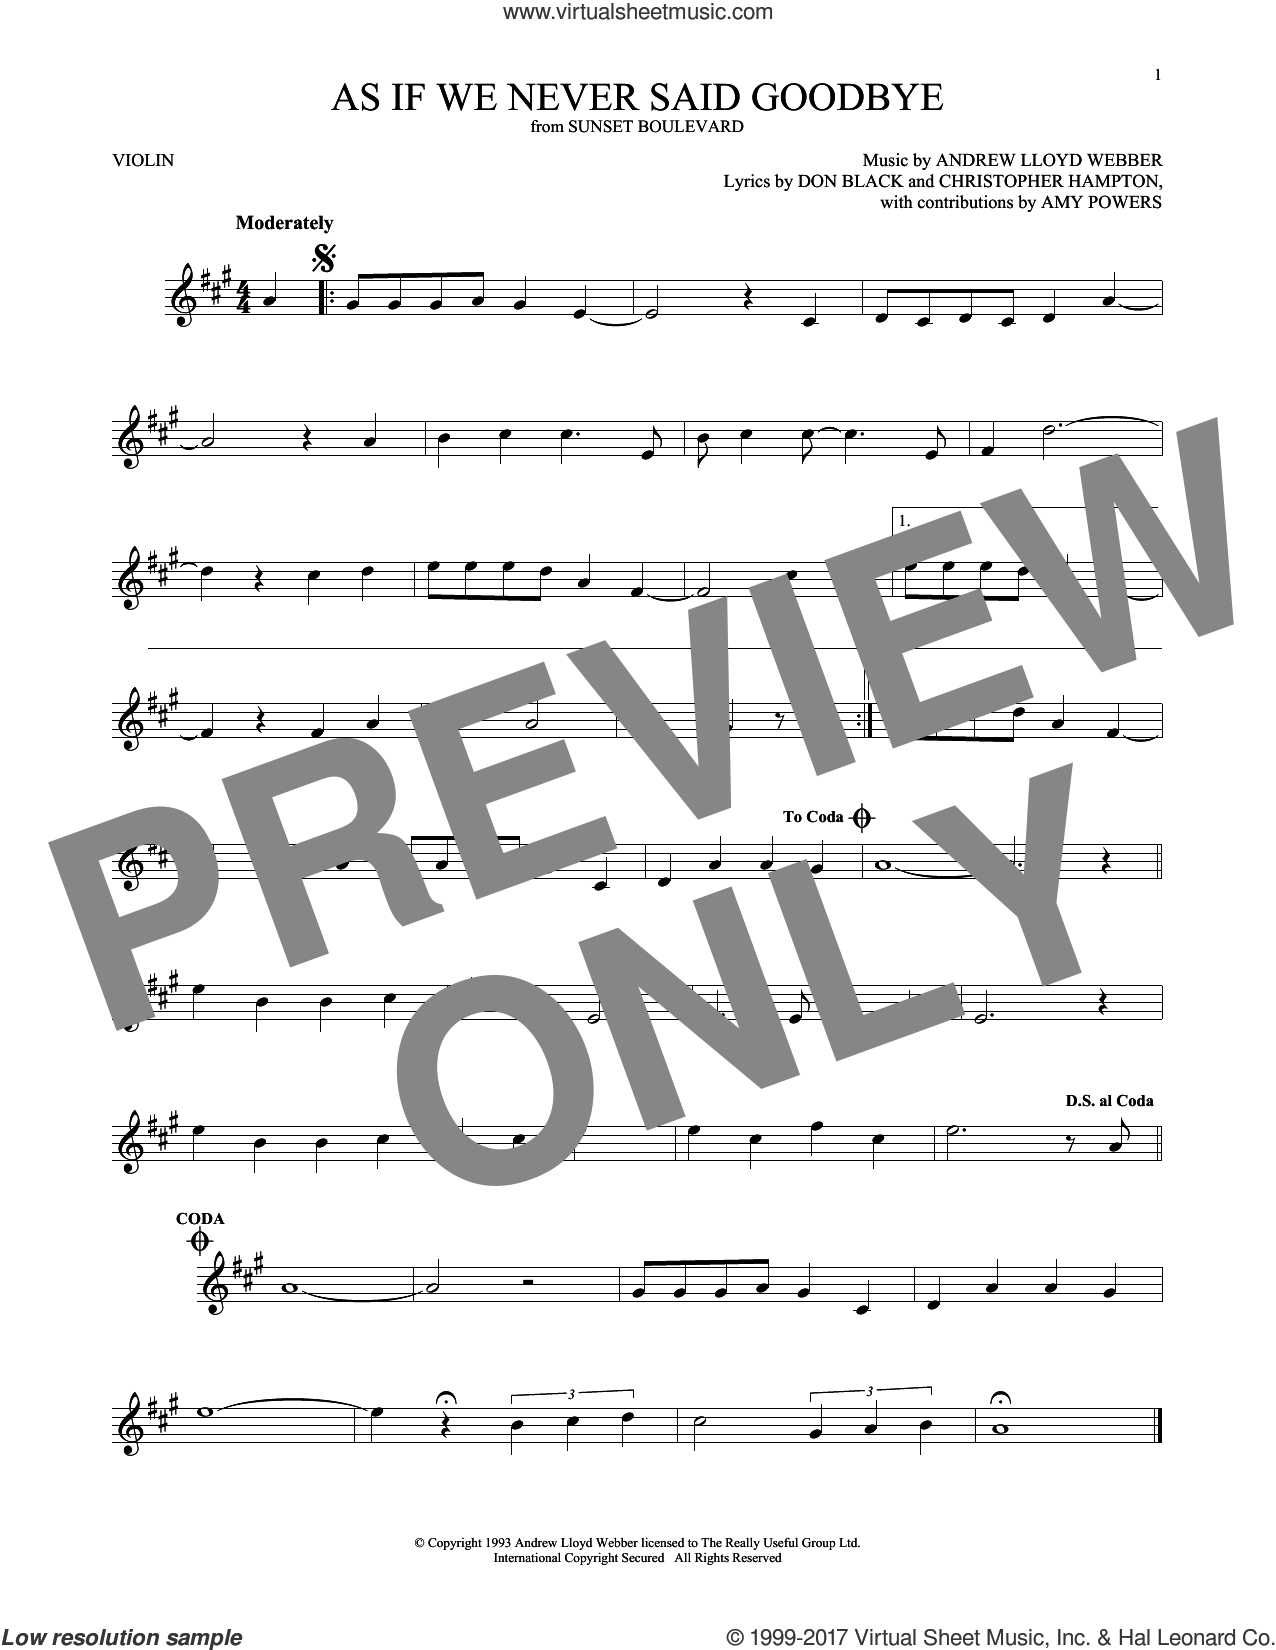 As If We Never Said Goodbye sheet music for violin solo by Andrew Lloyd Webber, Christopher Hampton and Don Black, intermediate. Score Image Preview.